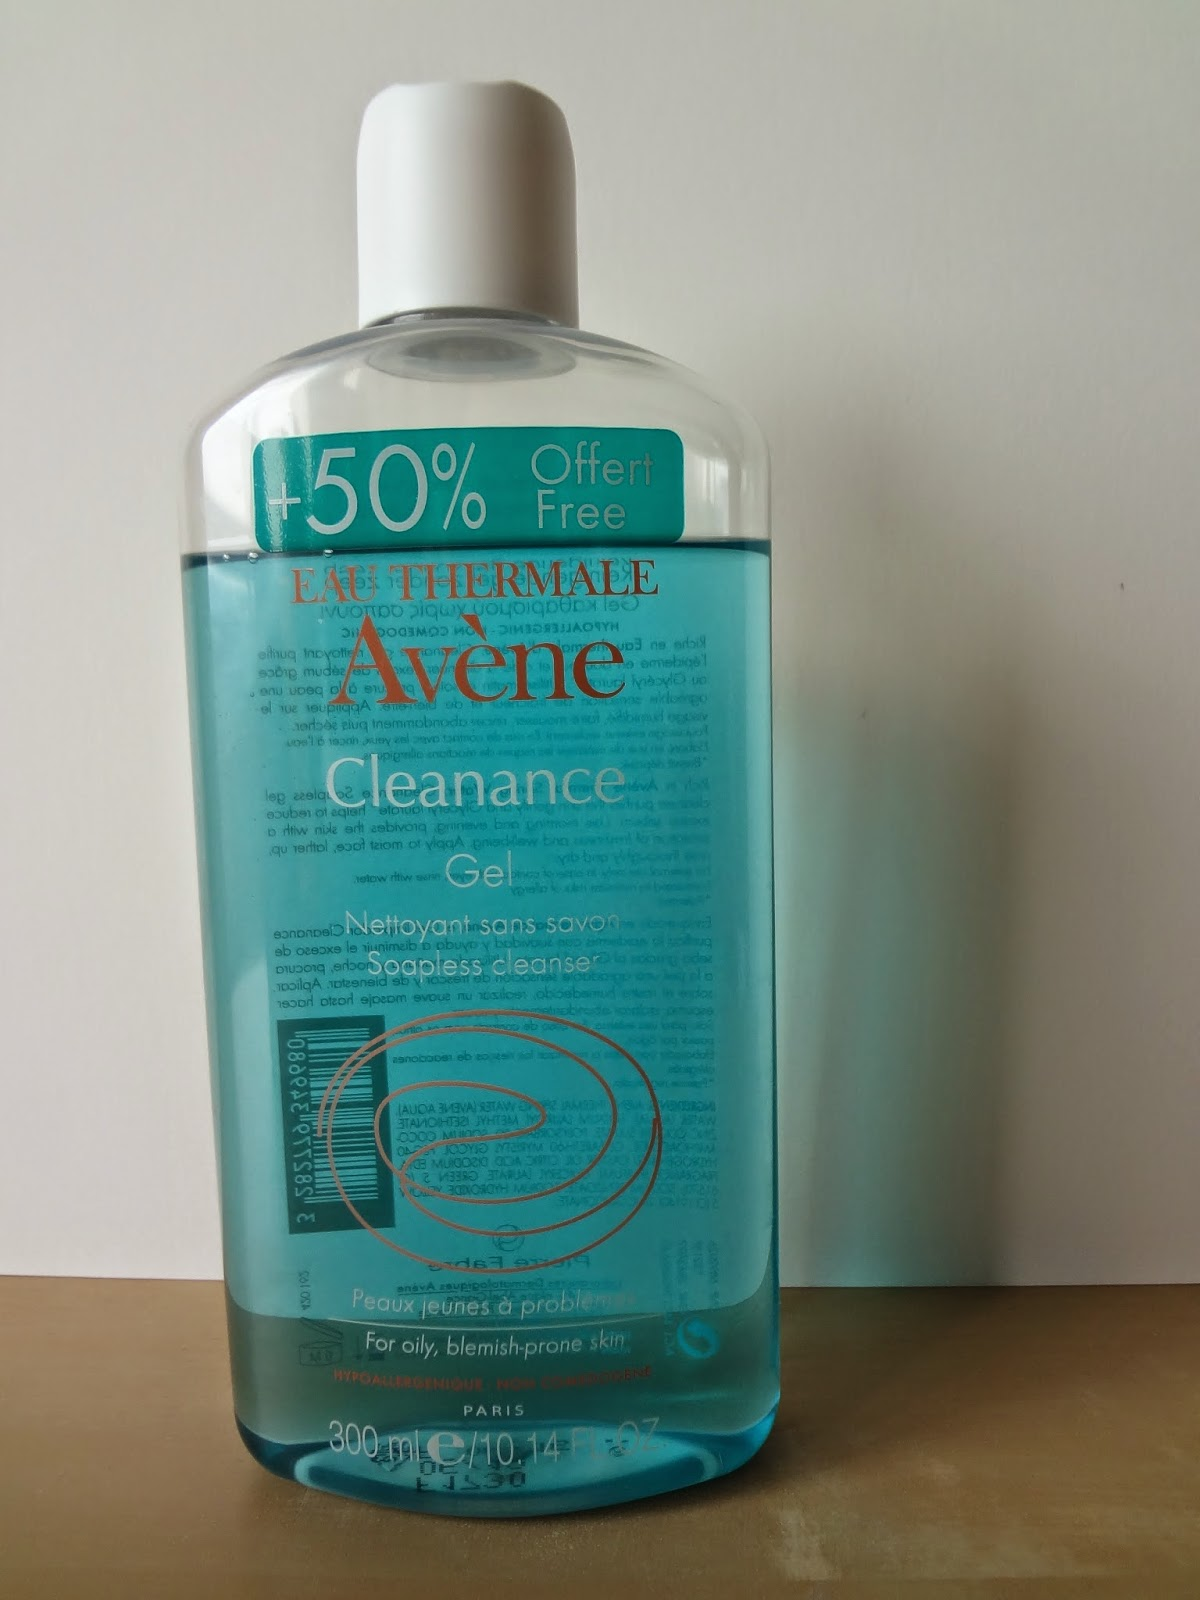 revue-review-gel-nettoyant-visage-face-cleansing-gel-compo-ingredients-composition-sulfates-detergents-sensible-peau-grasse-skincare-soins-nettoyage-demaquillage-demaquillant-nuxe-reve-miel-gel-nettoyant-biotherm-biosource-first-aid-beauty-face-cleanser-avene-cleanance-yves-rocher-pure-calmille